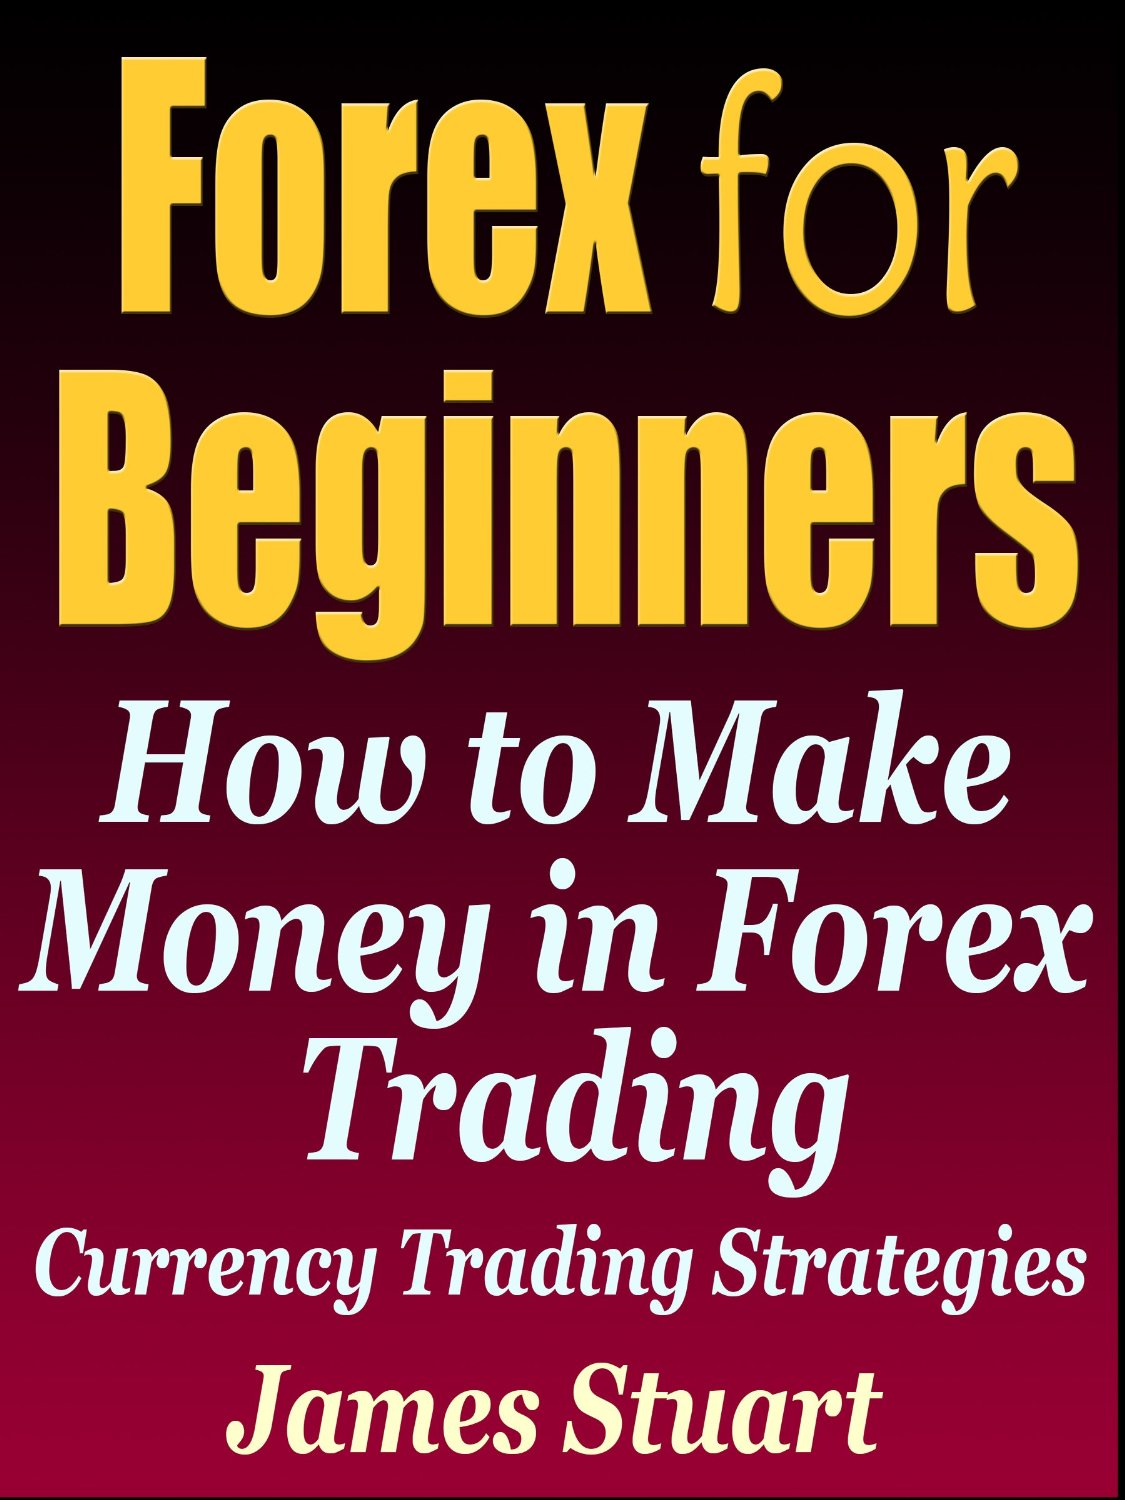 How can you make money in forex